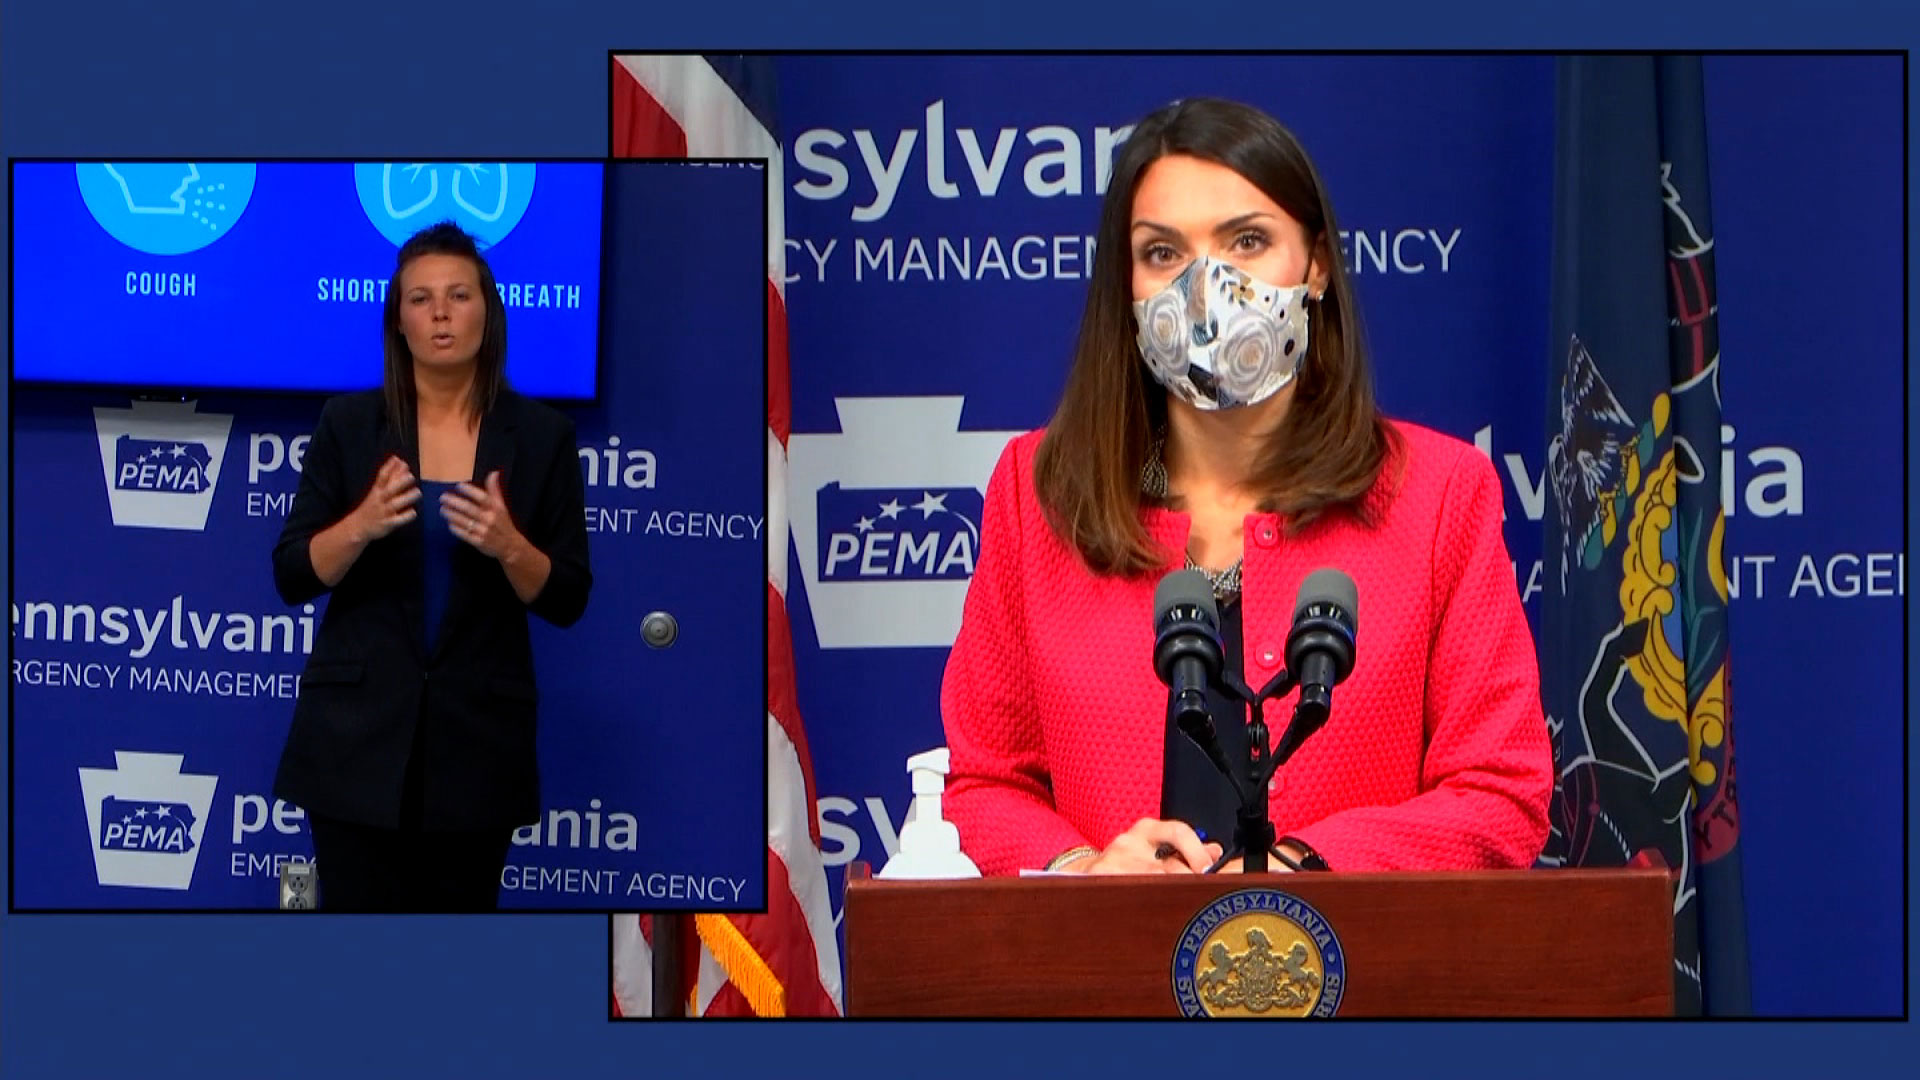 Acting Health Secretary Alison Beam, right, speaks during a news conference on Thursday.